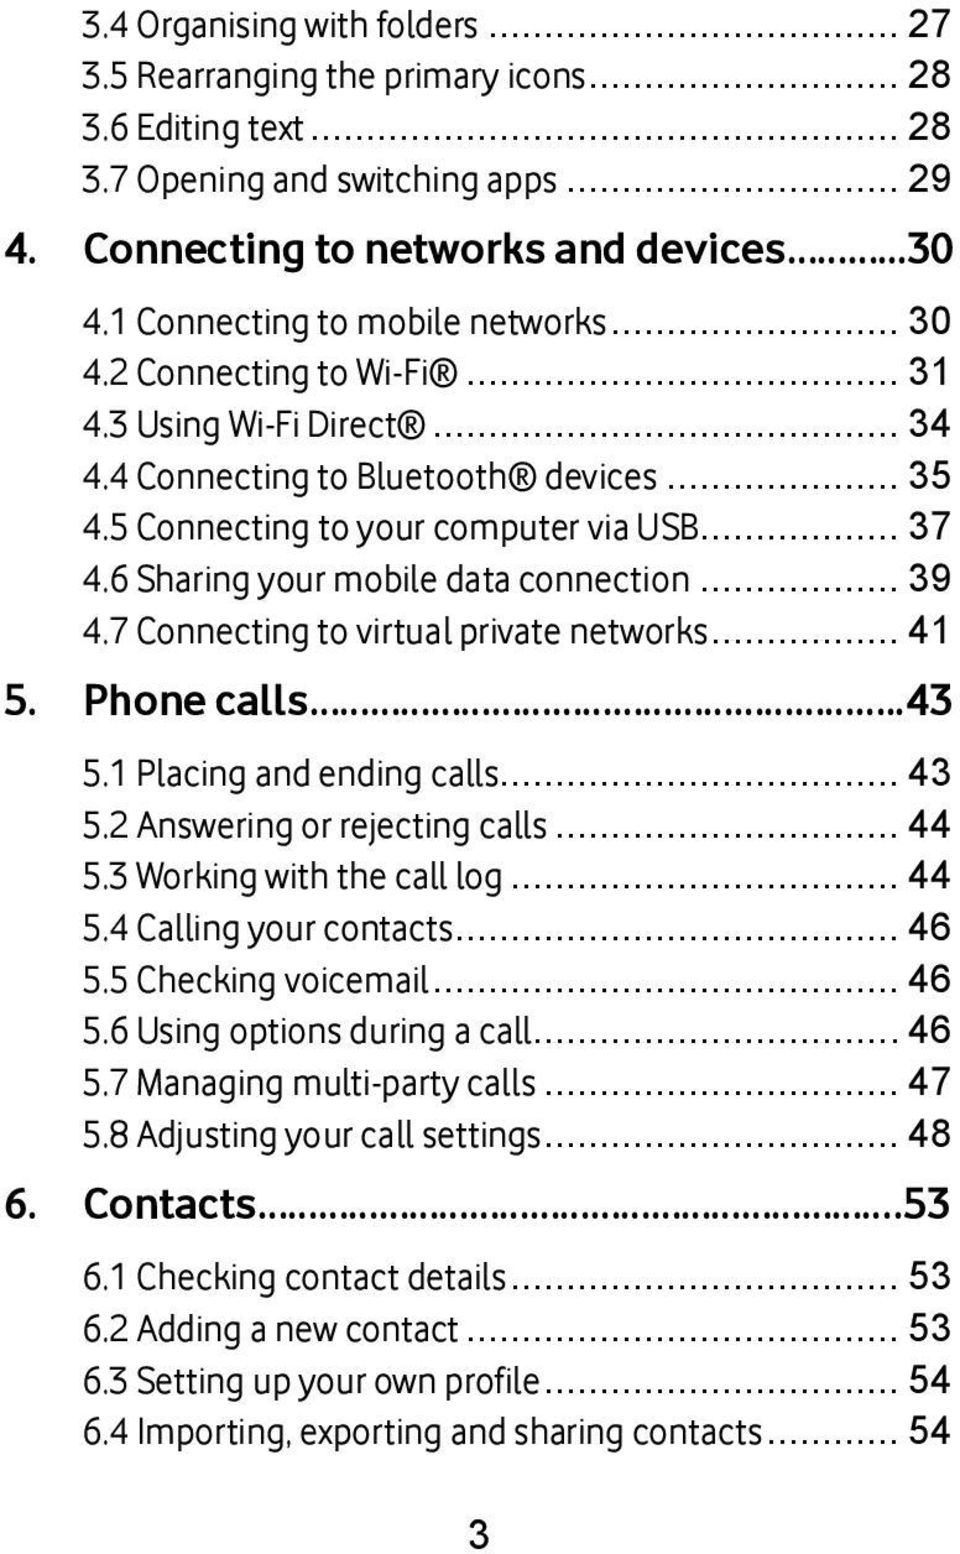 6 Sharing your mobile data connection... 39 4.7 Connecting to virtual private networks... 41 5. Phone calls..43 5.1 Placing and ending calls... 43 5.2 Answering or rejecting calls... 44 5.